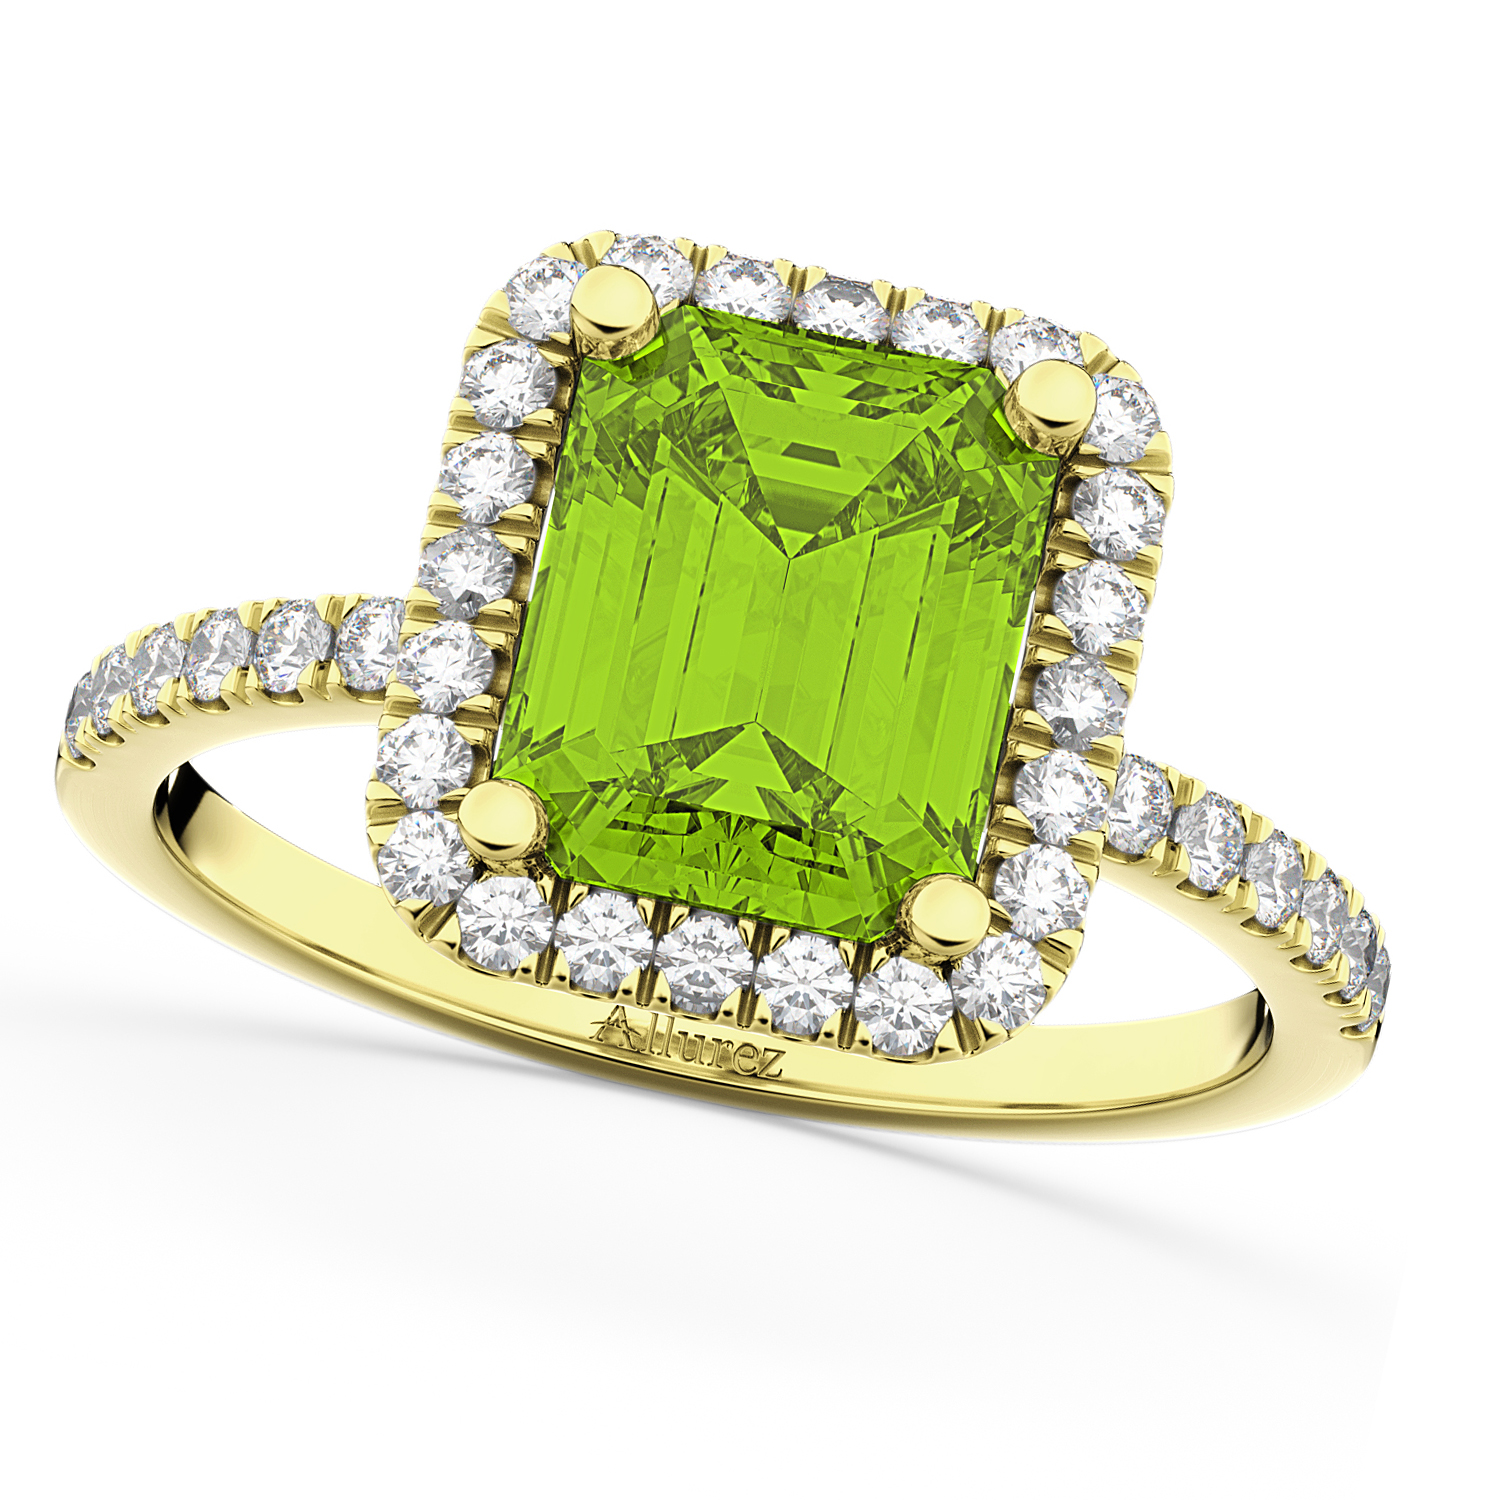 statement engagement products carat princess green rings cocktail silver cut sparkles faux nadine beloved cubic anniversary zirconia valentine ring cz peridot wedding diamond